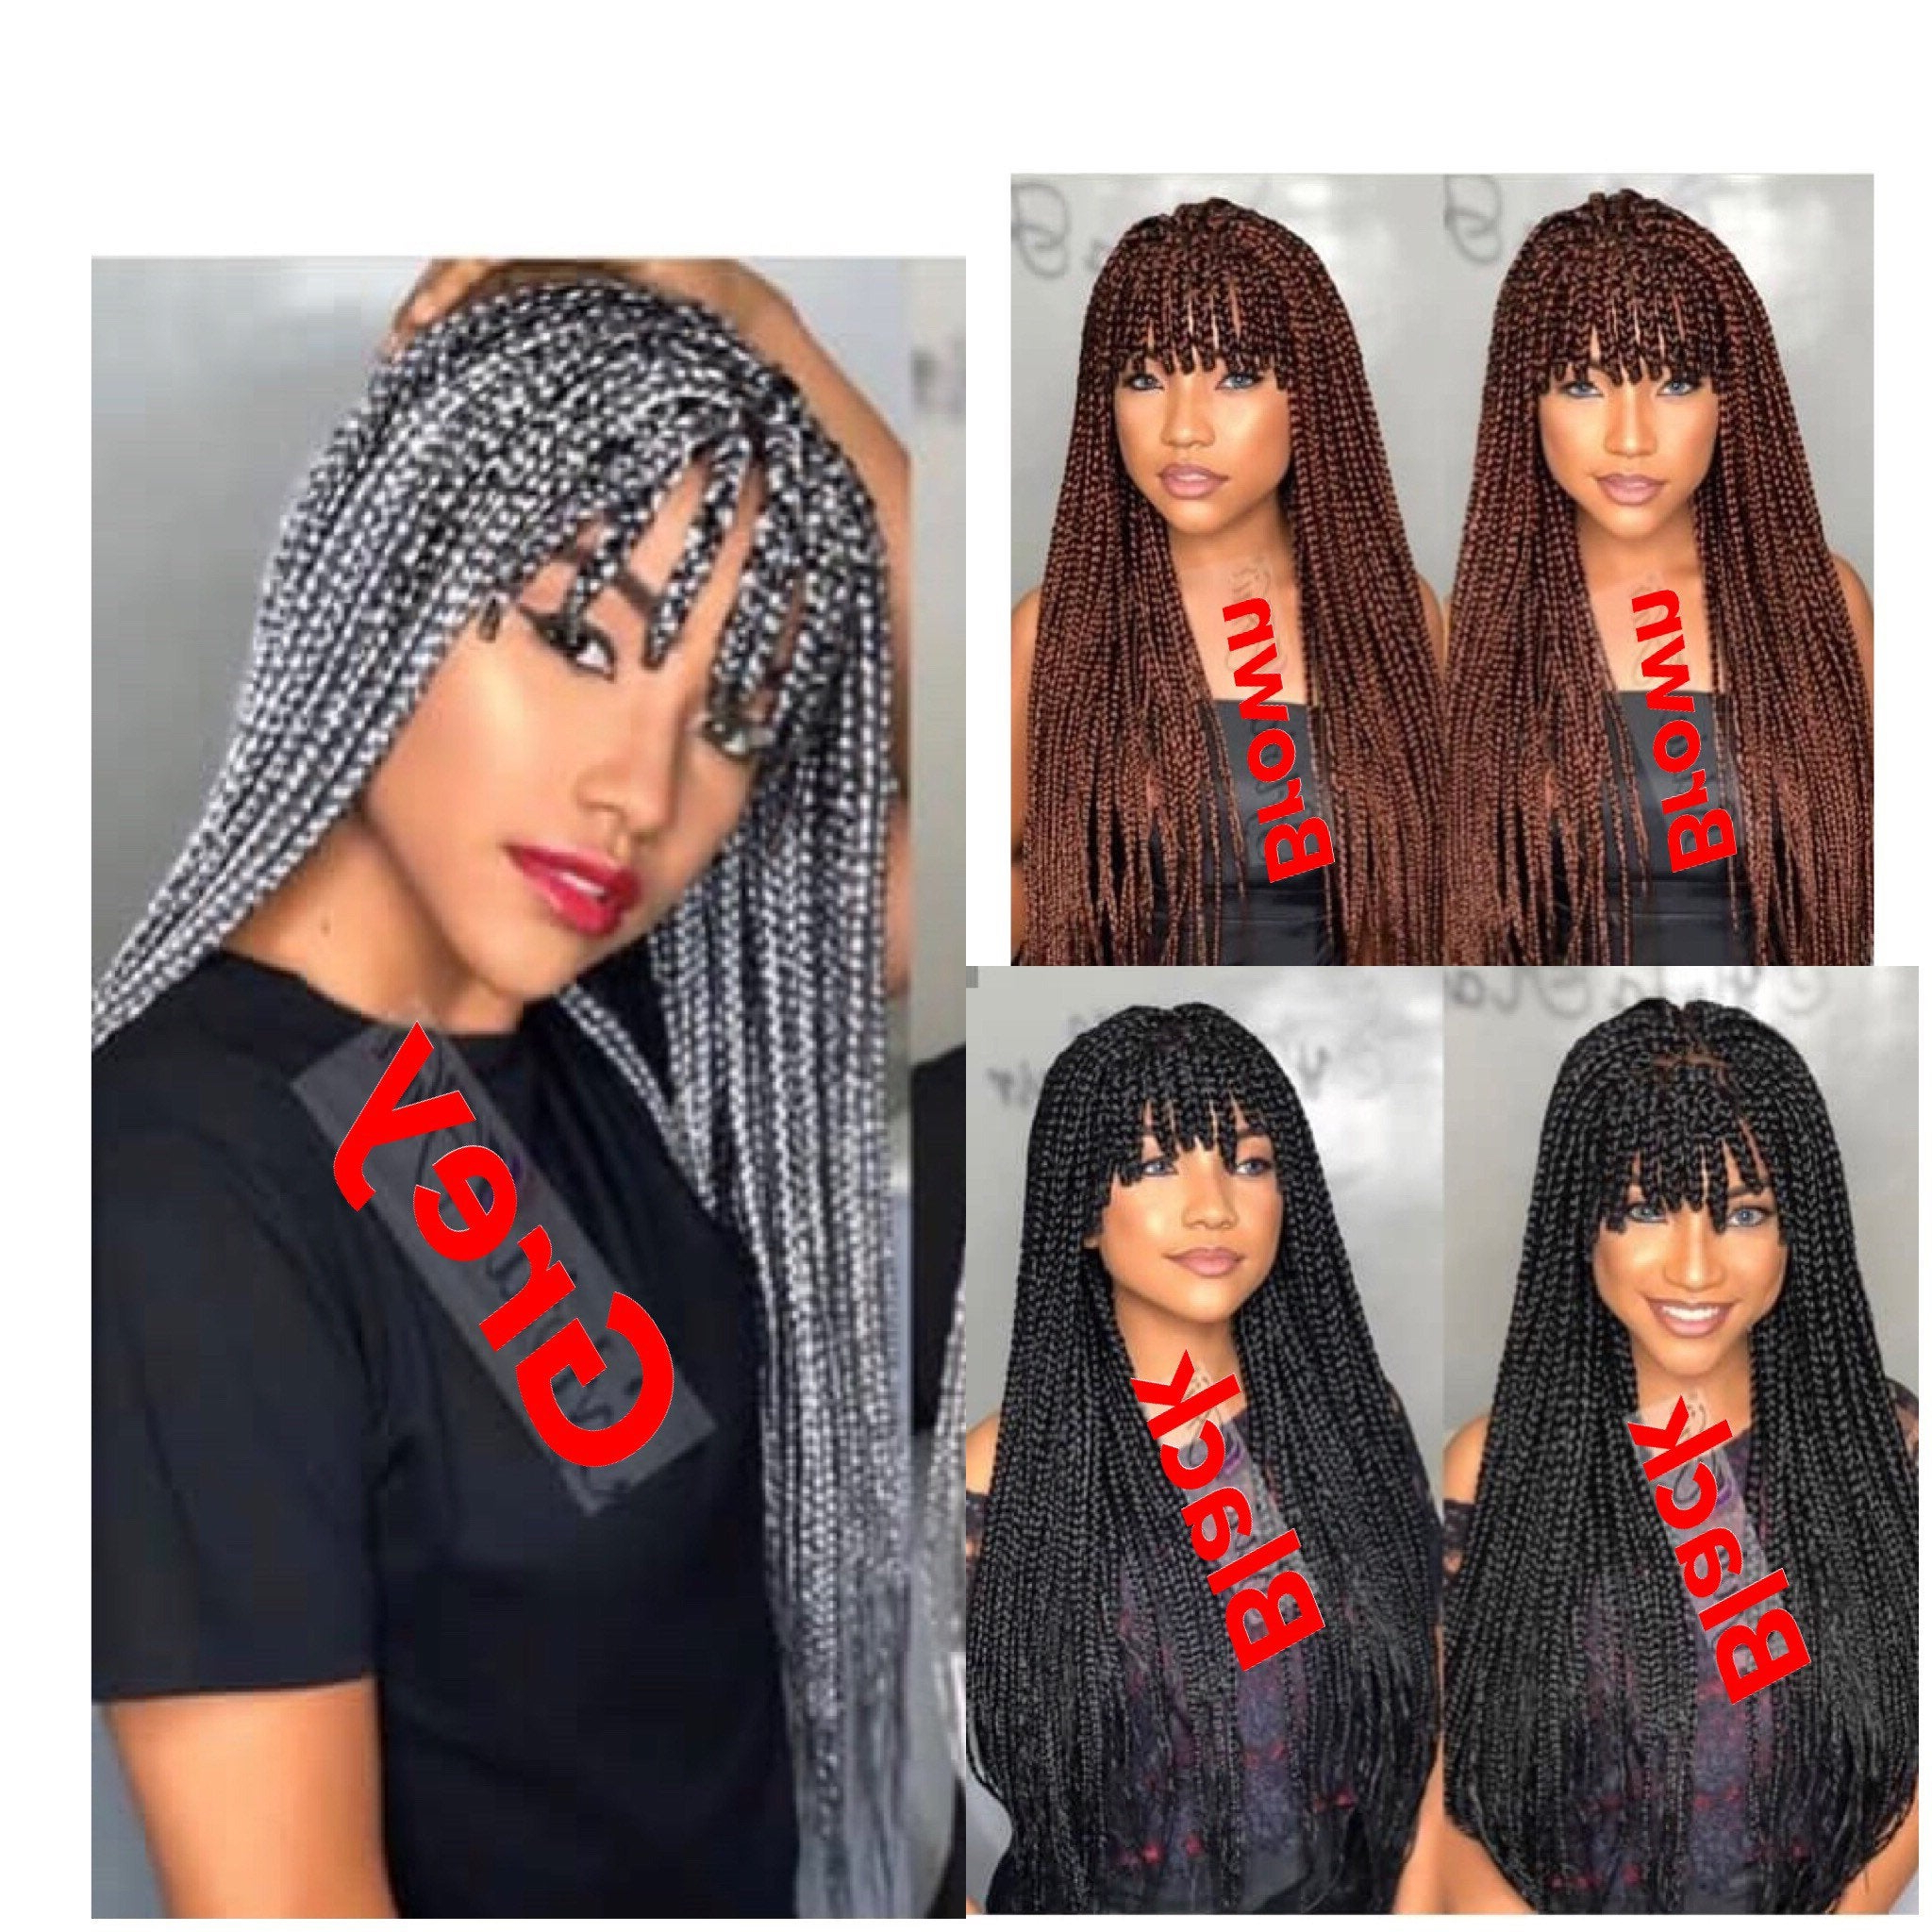 Cleopatra Fully Braided Wig Box Braids Wig Braid Wig Cornrow Wig Braided Unit Goddess Locs Goddess Braids Lemonade Wig Cap Frontal Faux Locs With Recent Cleopatra Micro Braids (View 16 of 20)